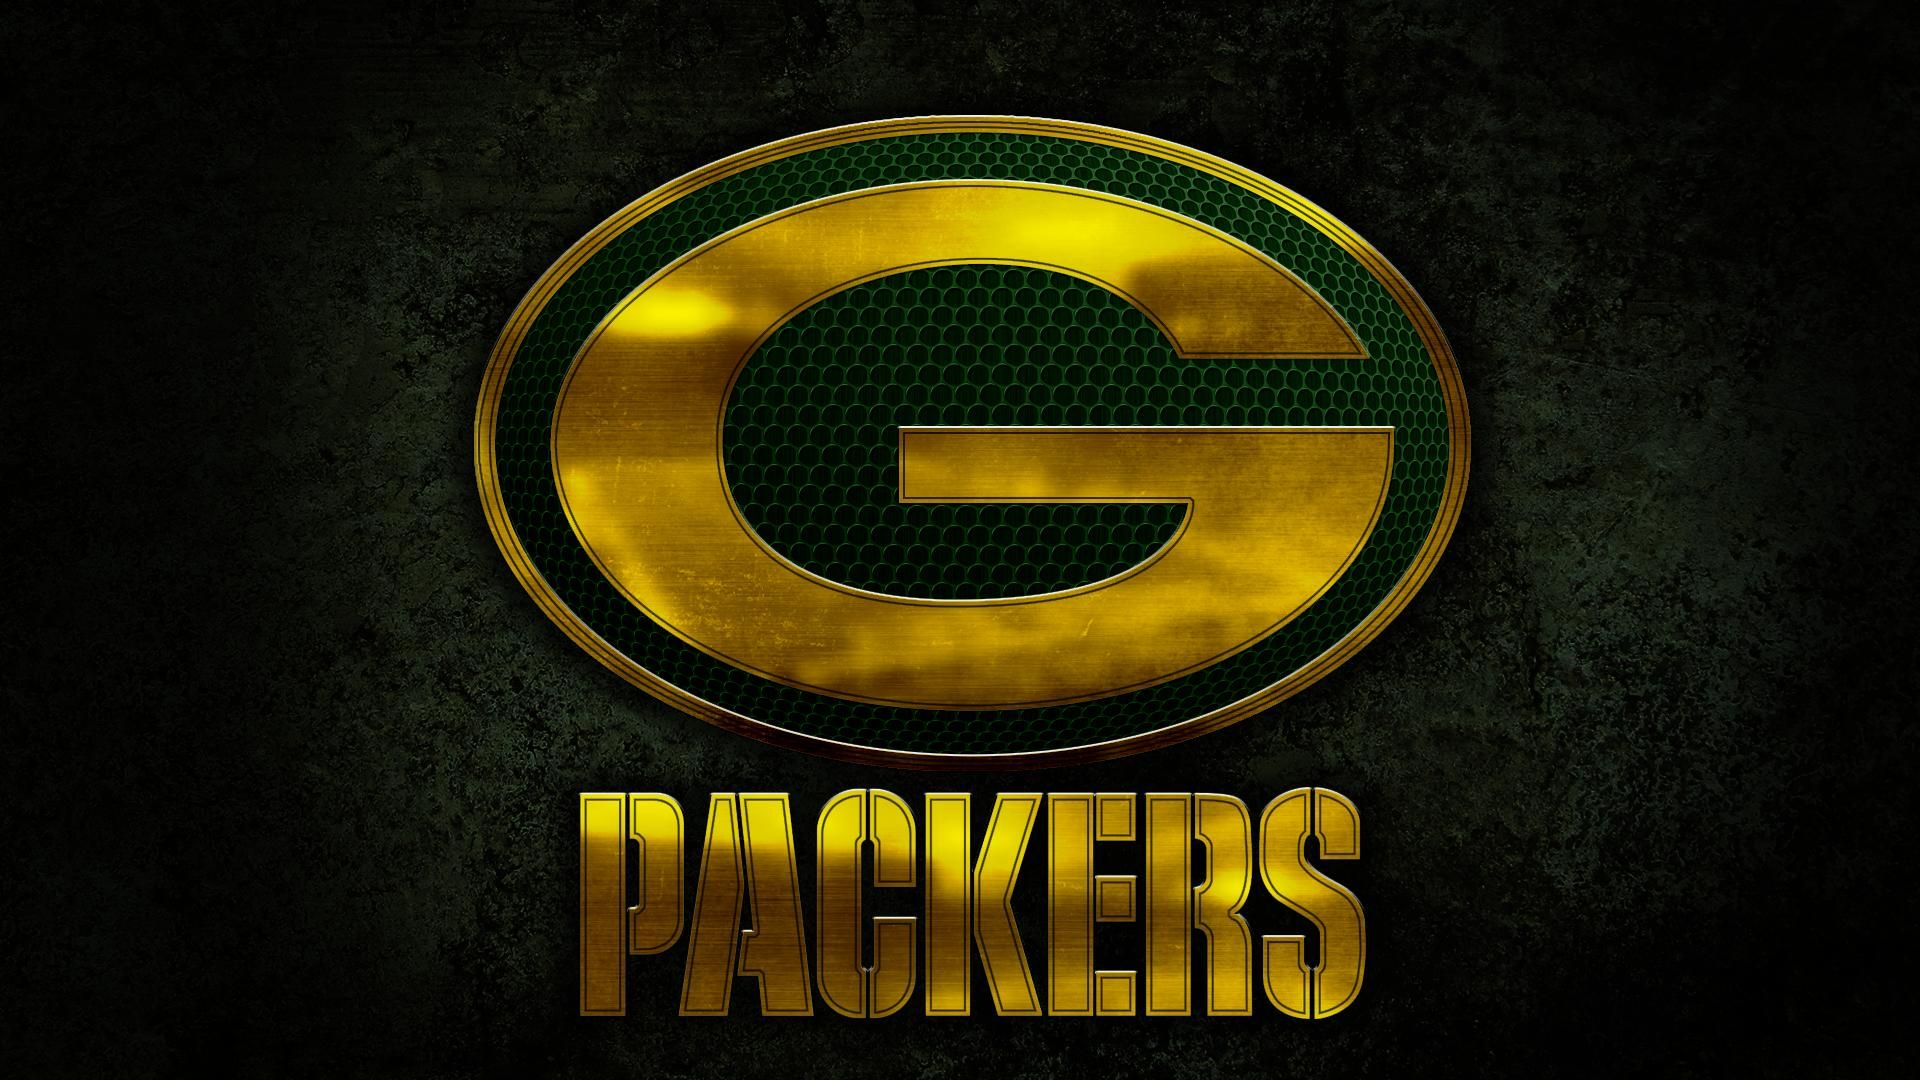 NFL Packers Wallpaper HD Green bay packers wallpaper